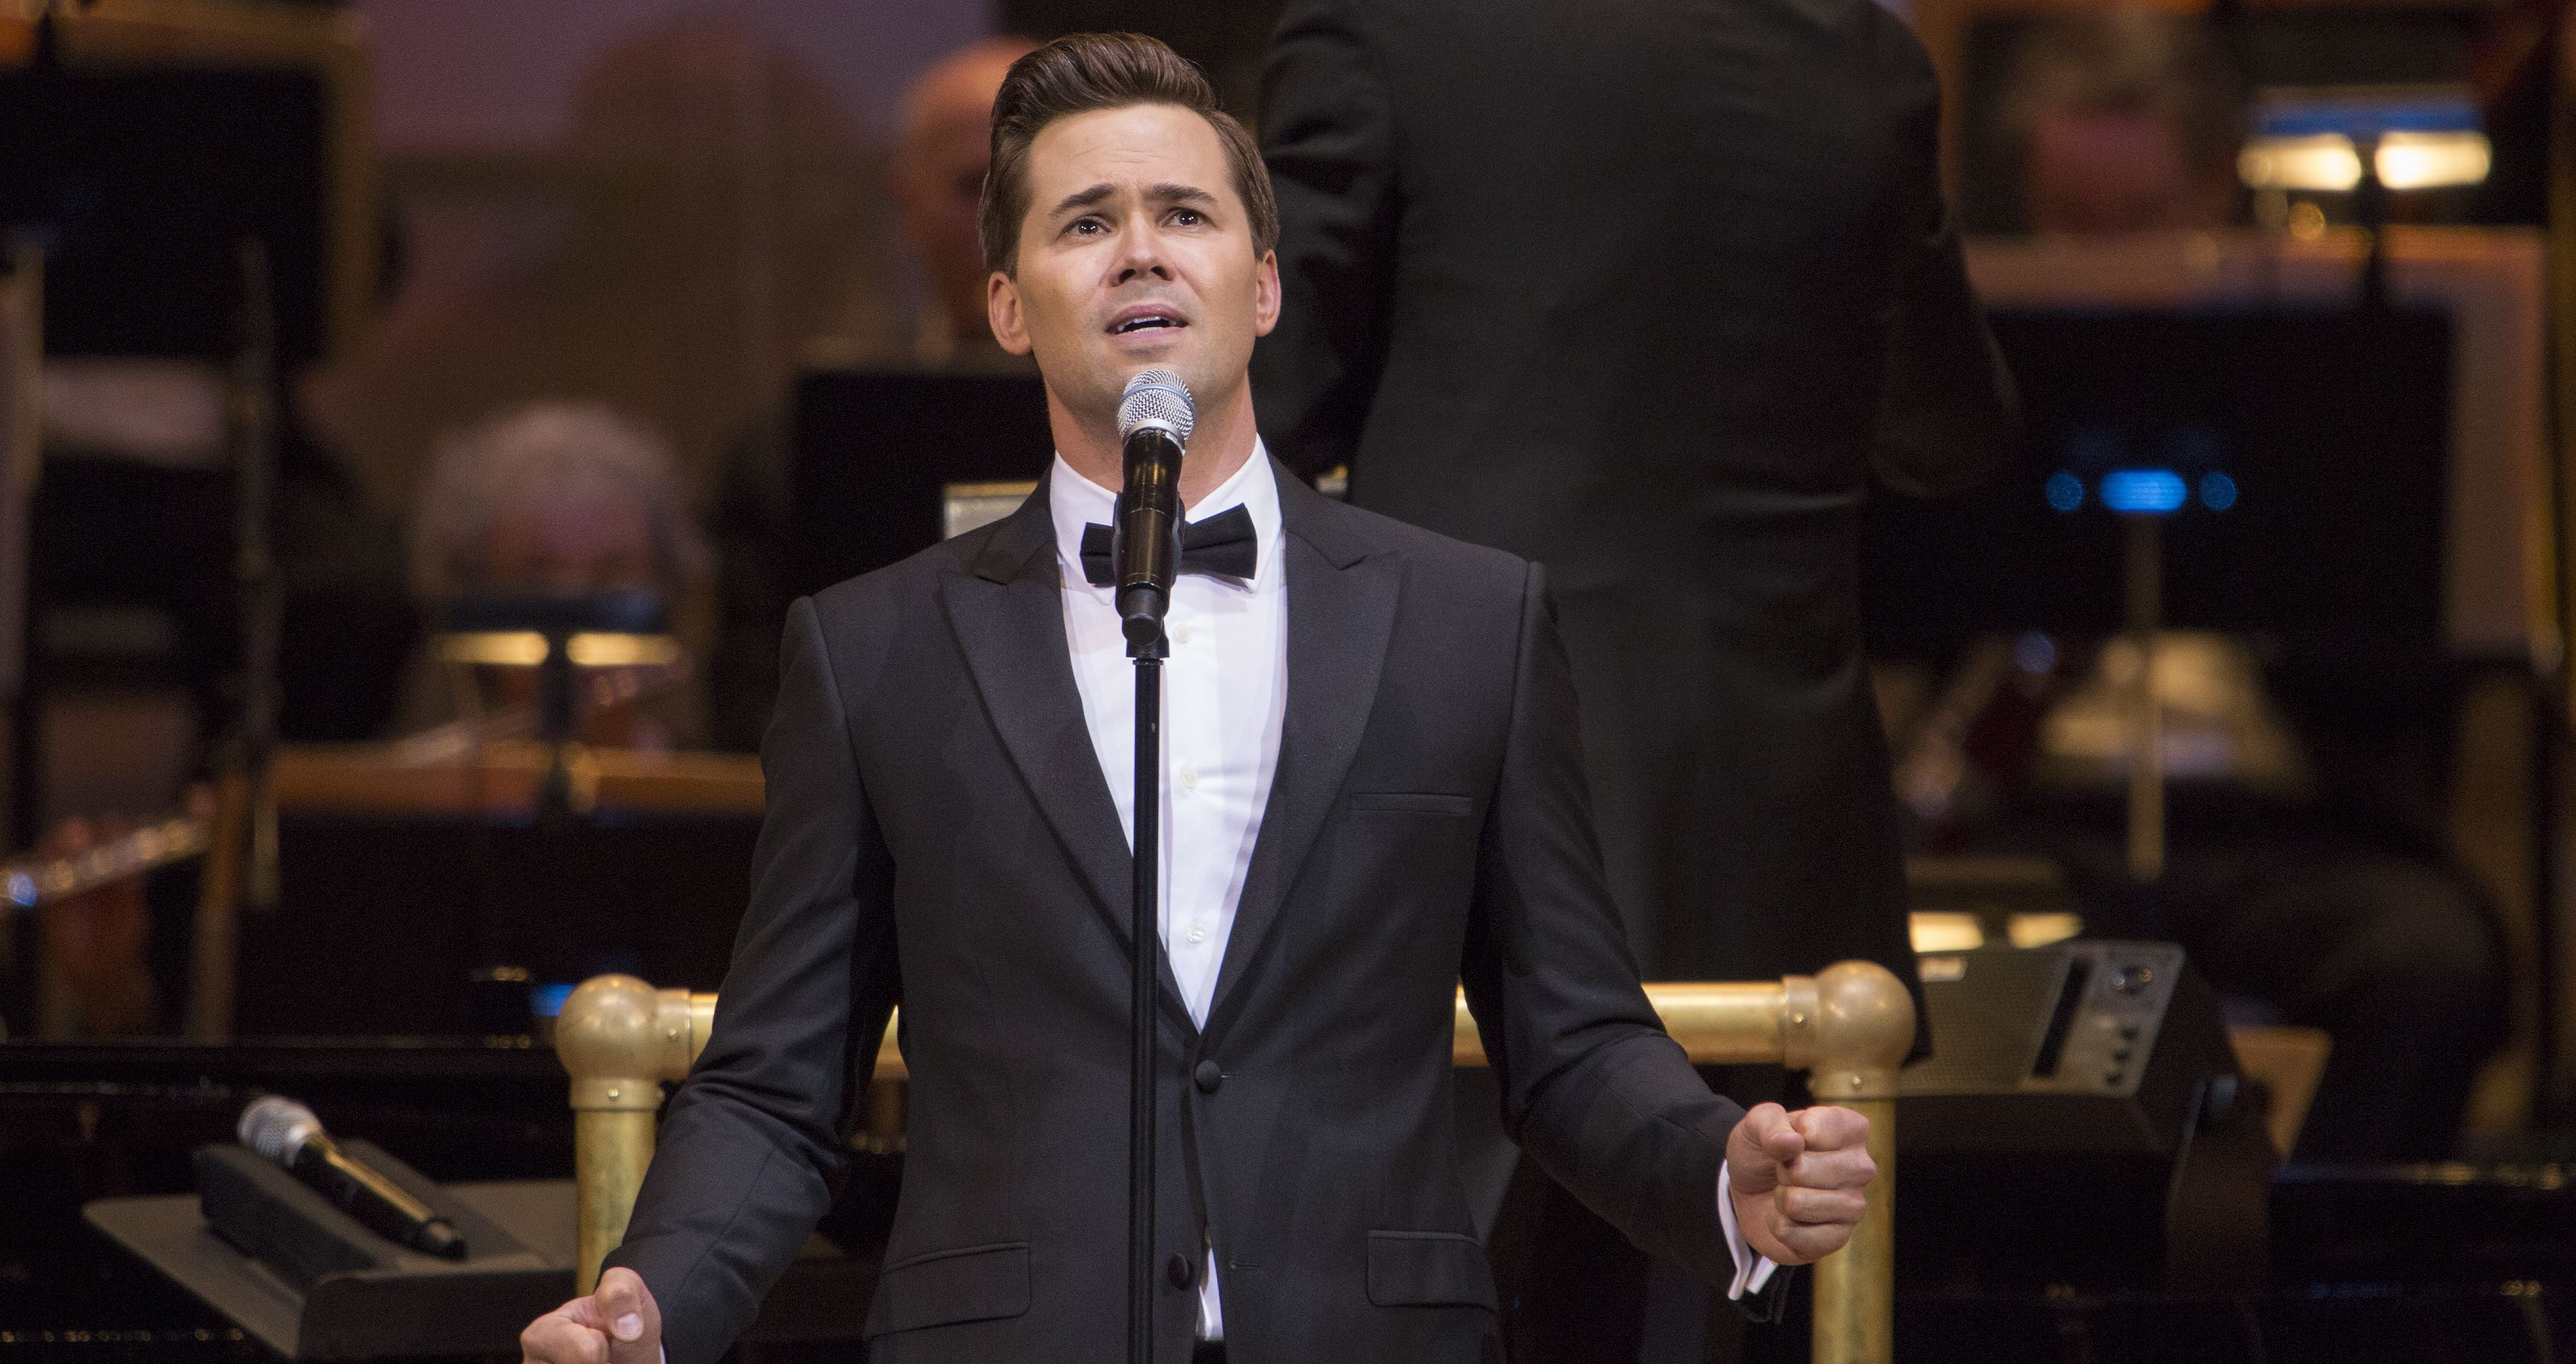 Andrew Rannells performs with The New York Pops